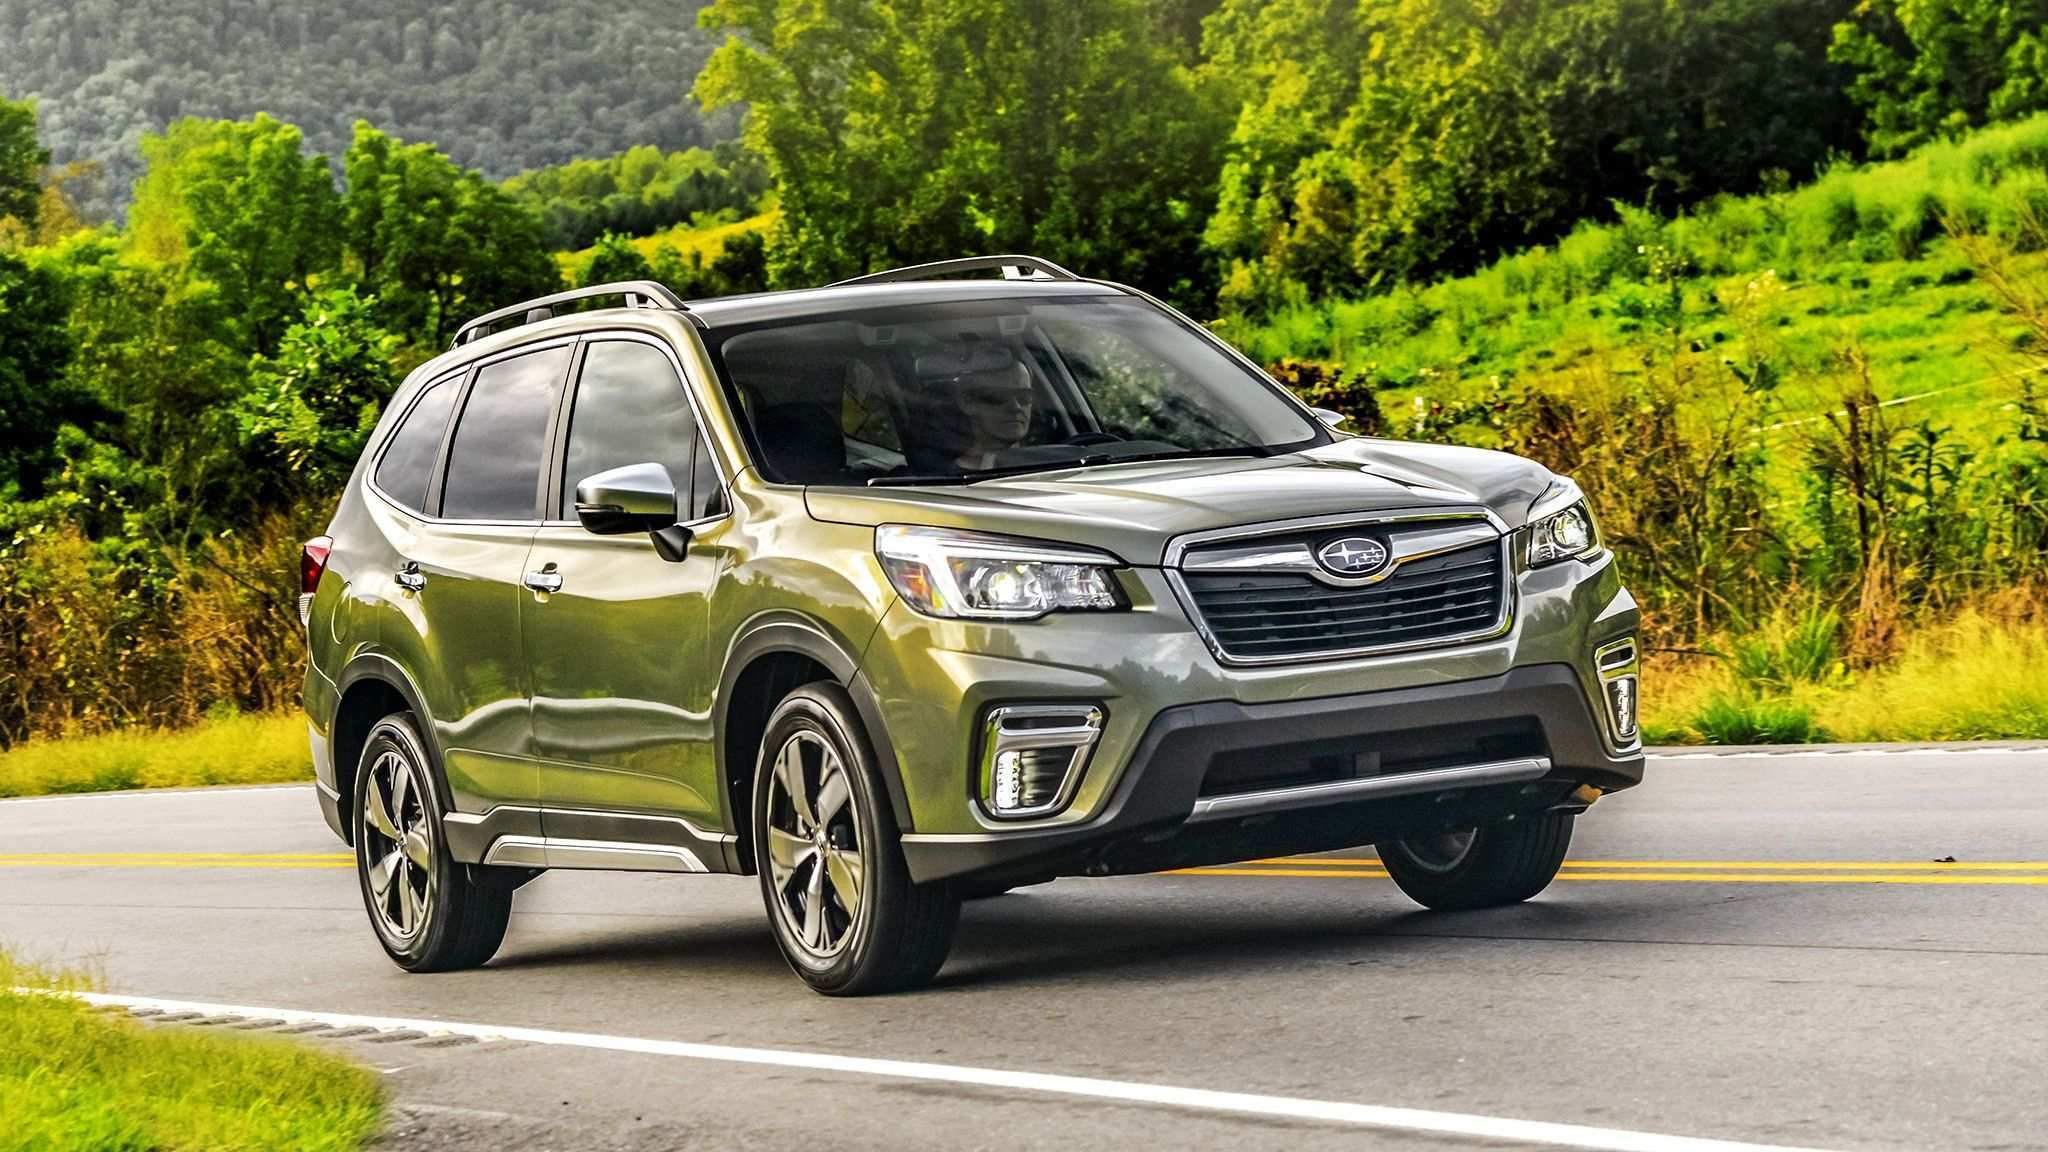 66 New Subaru Forester 2019 Gas Mileage Performance and New Engine by Subaru Forester 2019 Gas Mileage